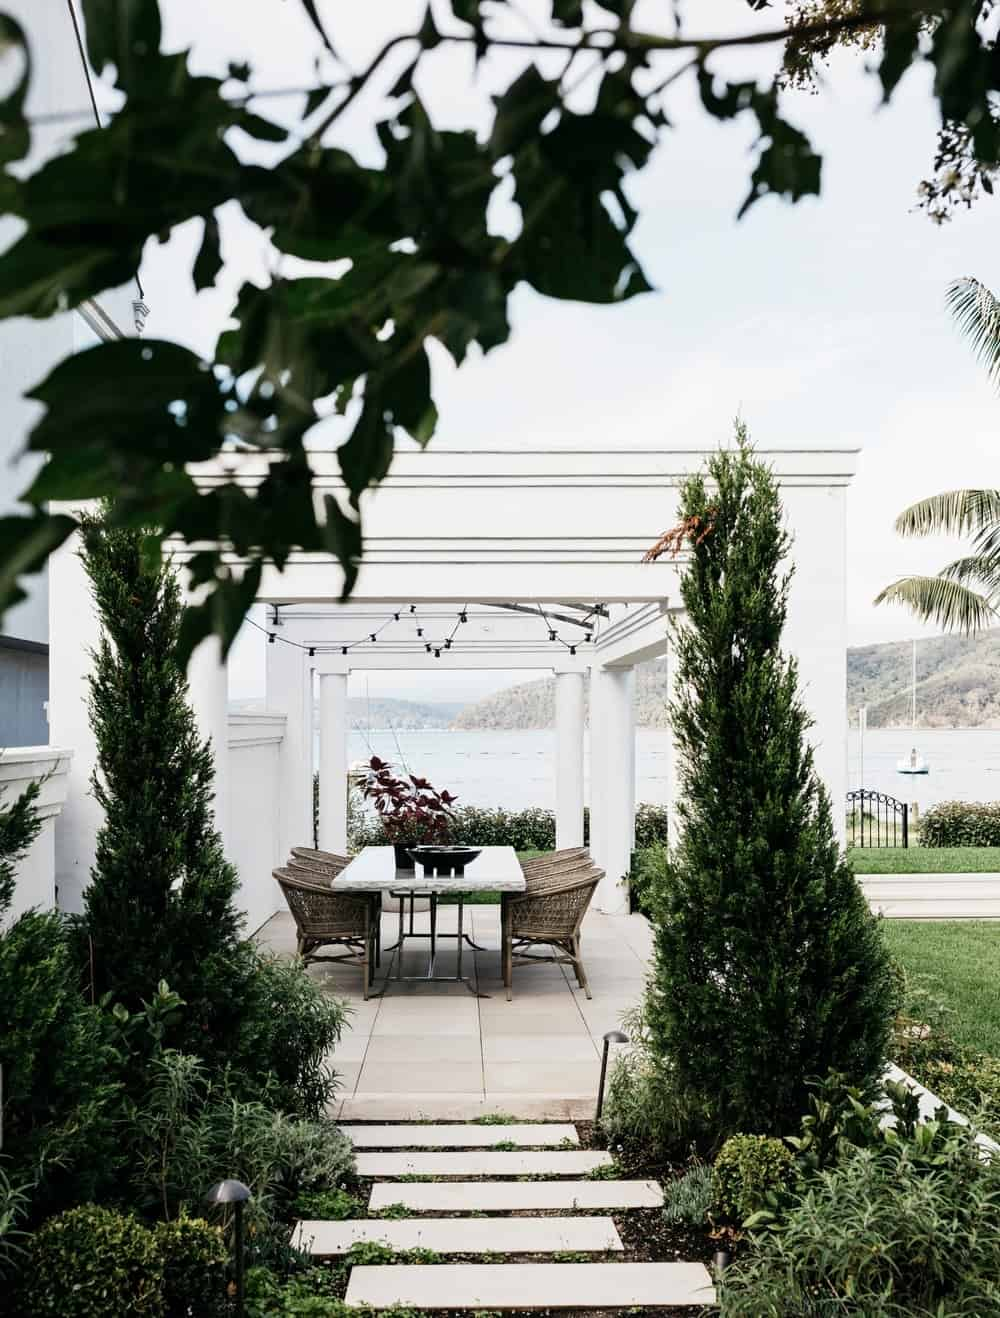 White patio with a beautiful pathway surrounded by trees and green plants leading to the outdoor dining table set.